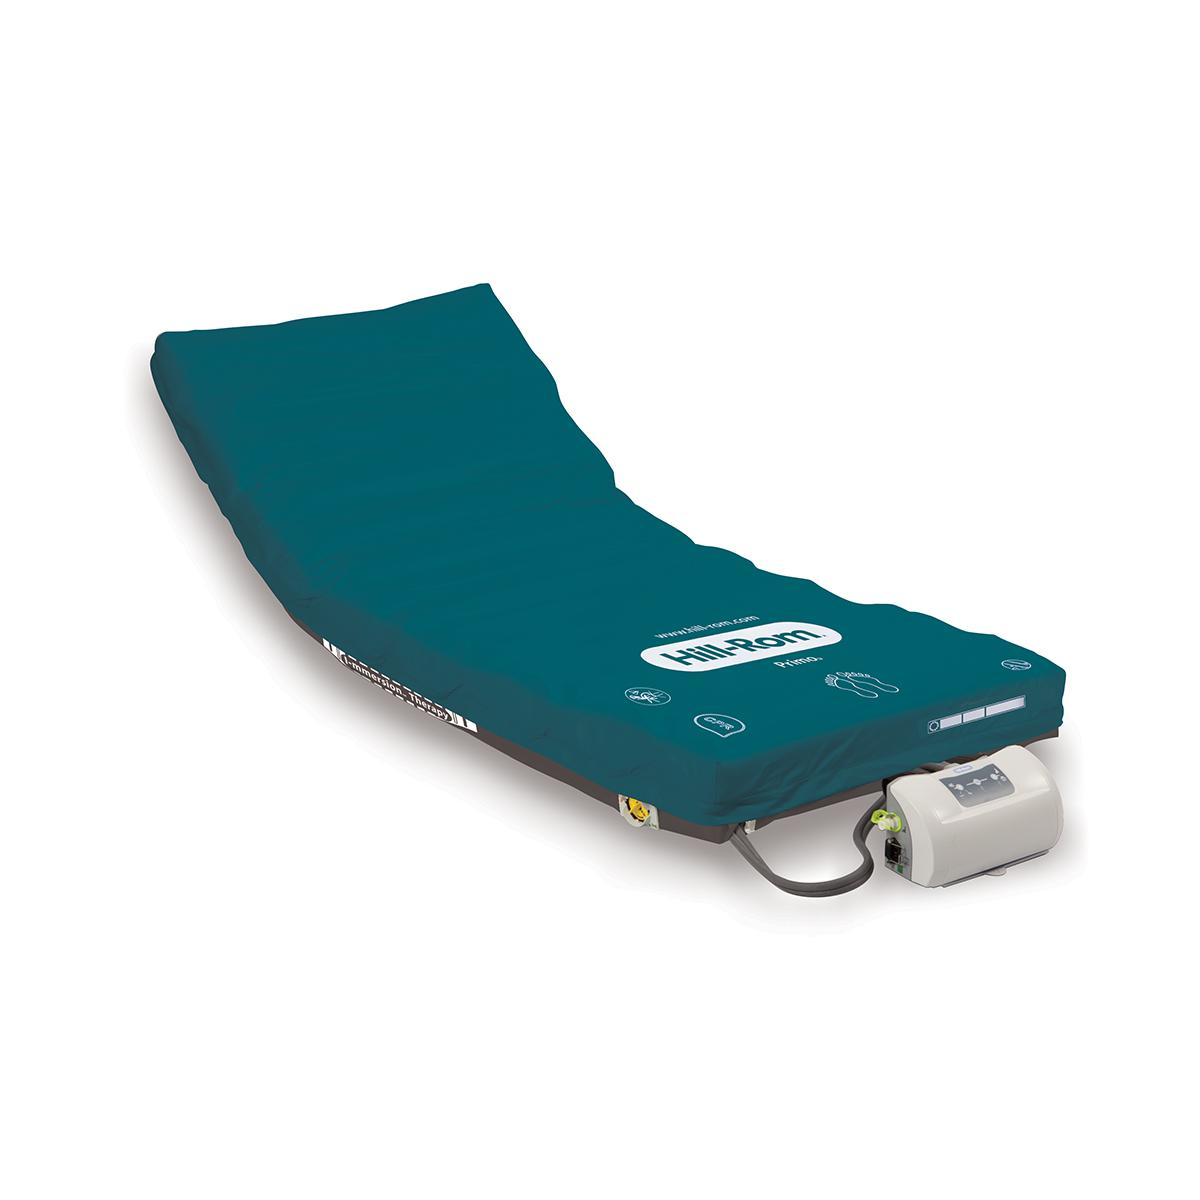 Primo mattress replacement system, 3/4 view